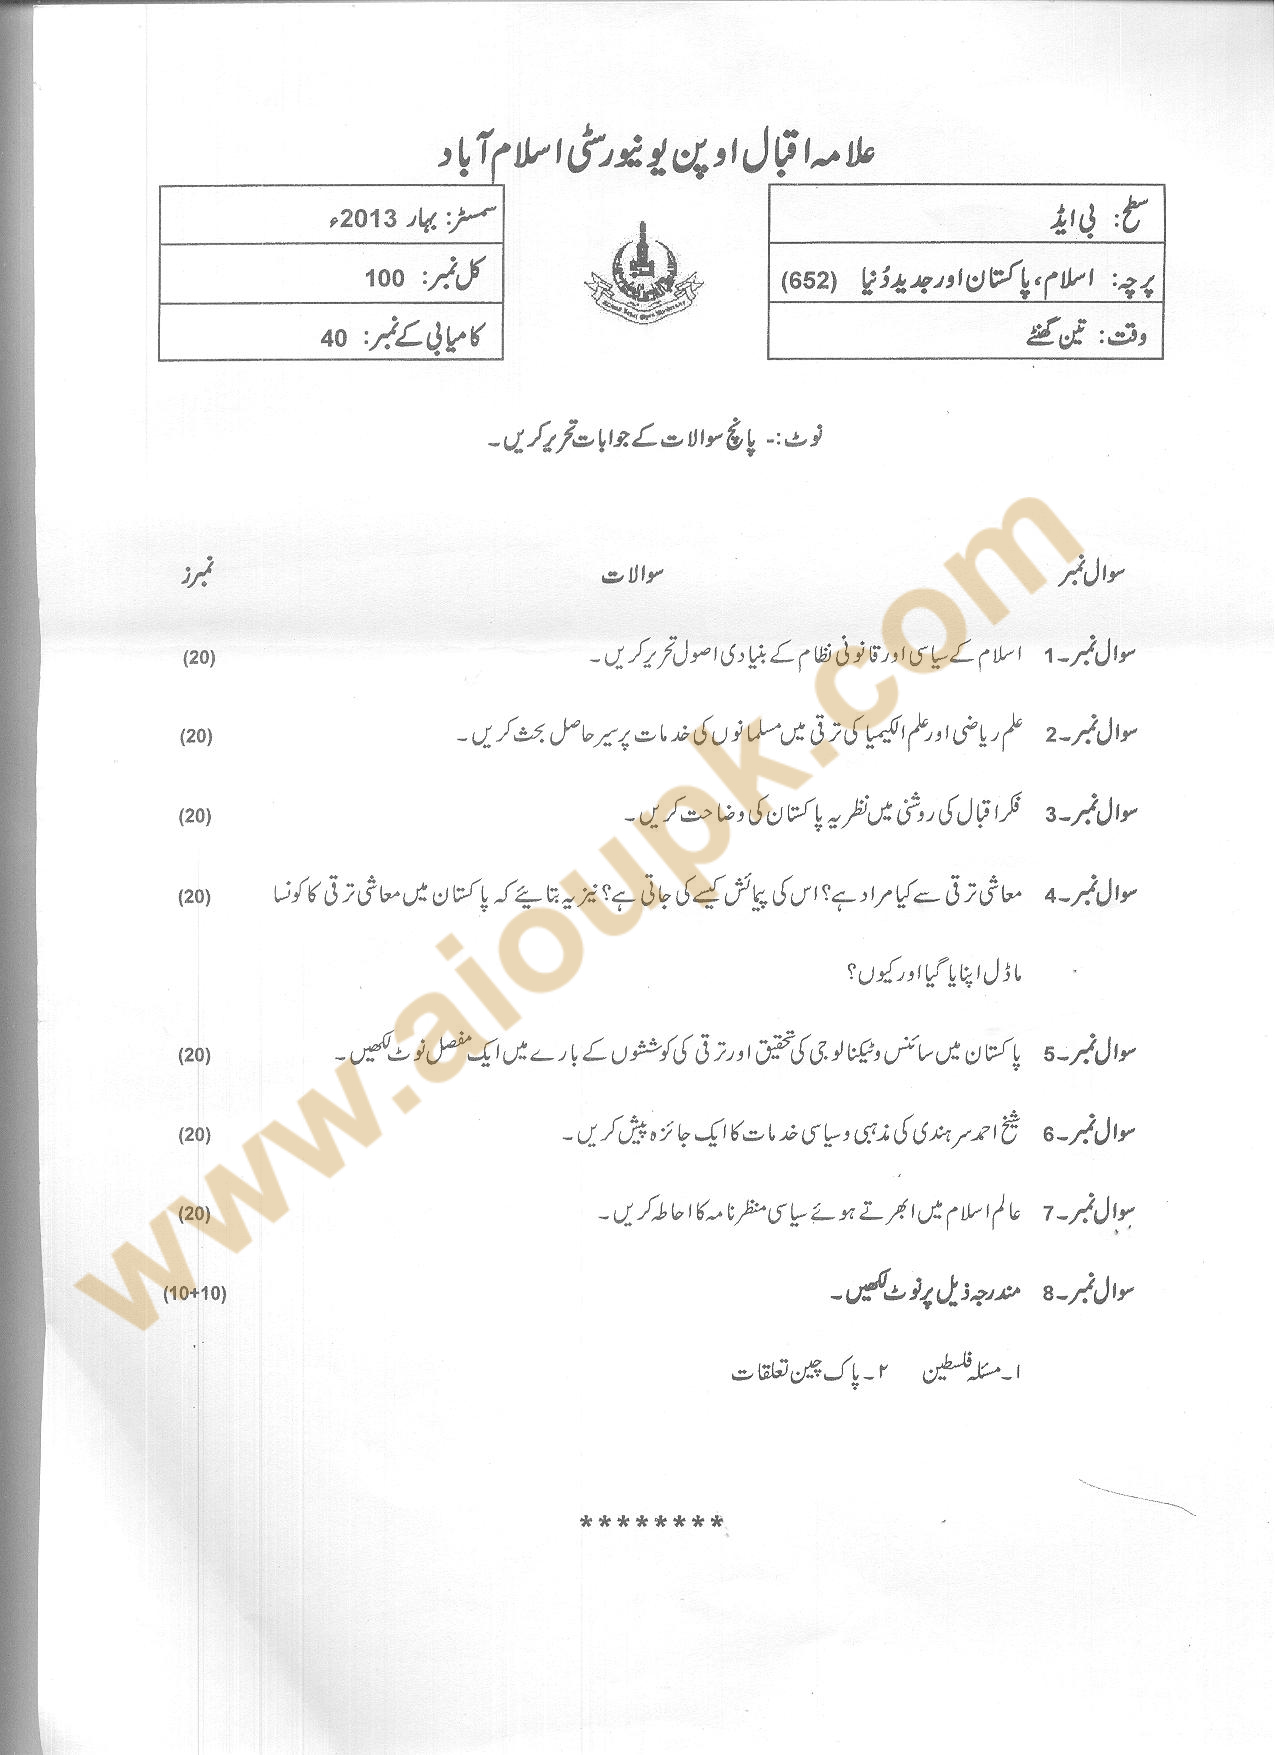 AIOU Old Paper Code 652 Course : Islam Pakistan and Modern